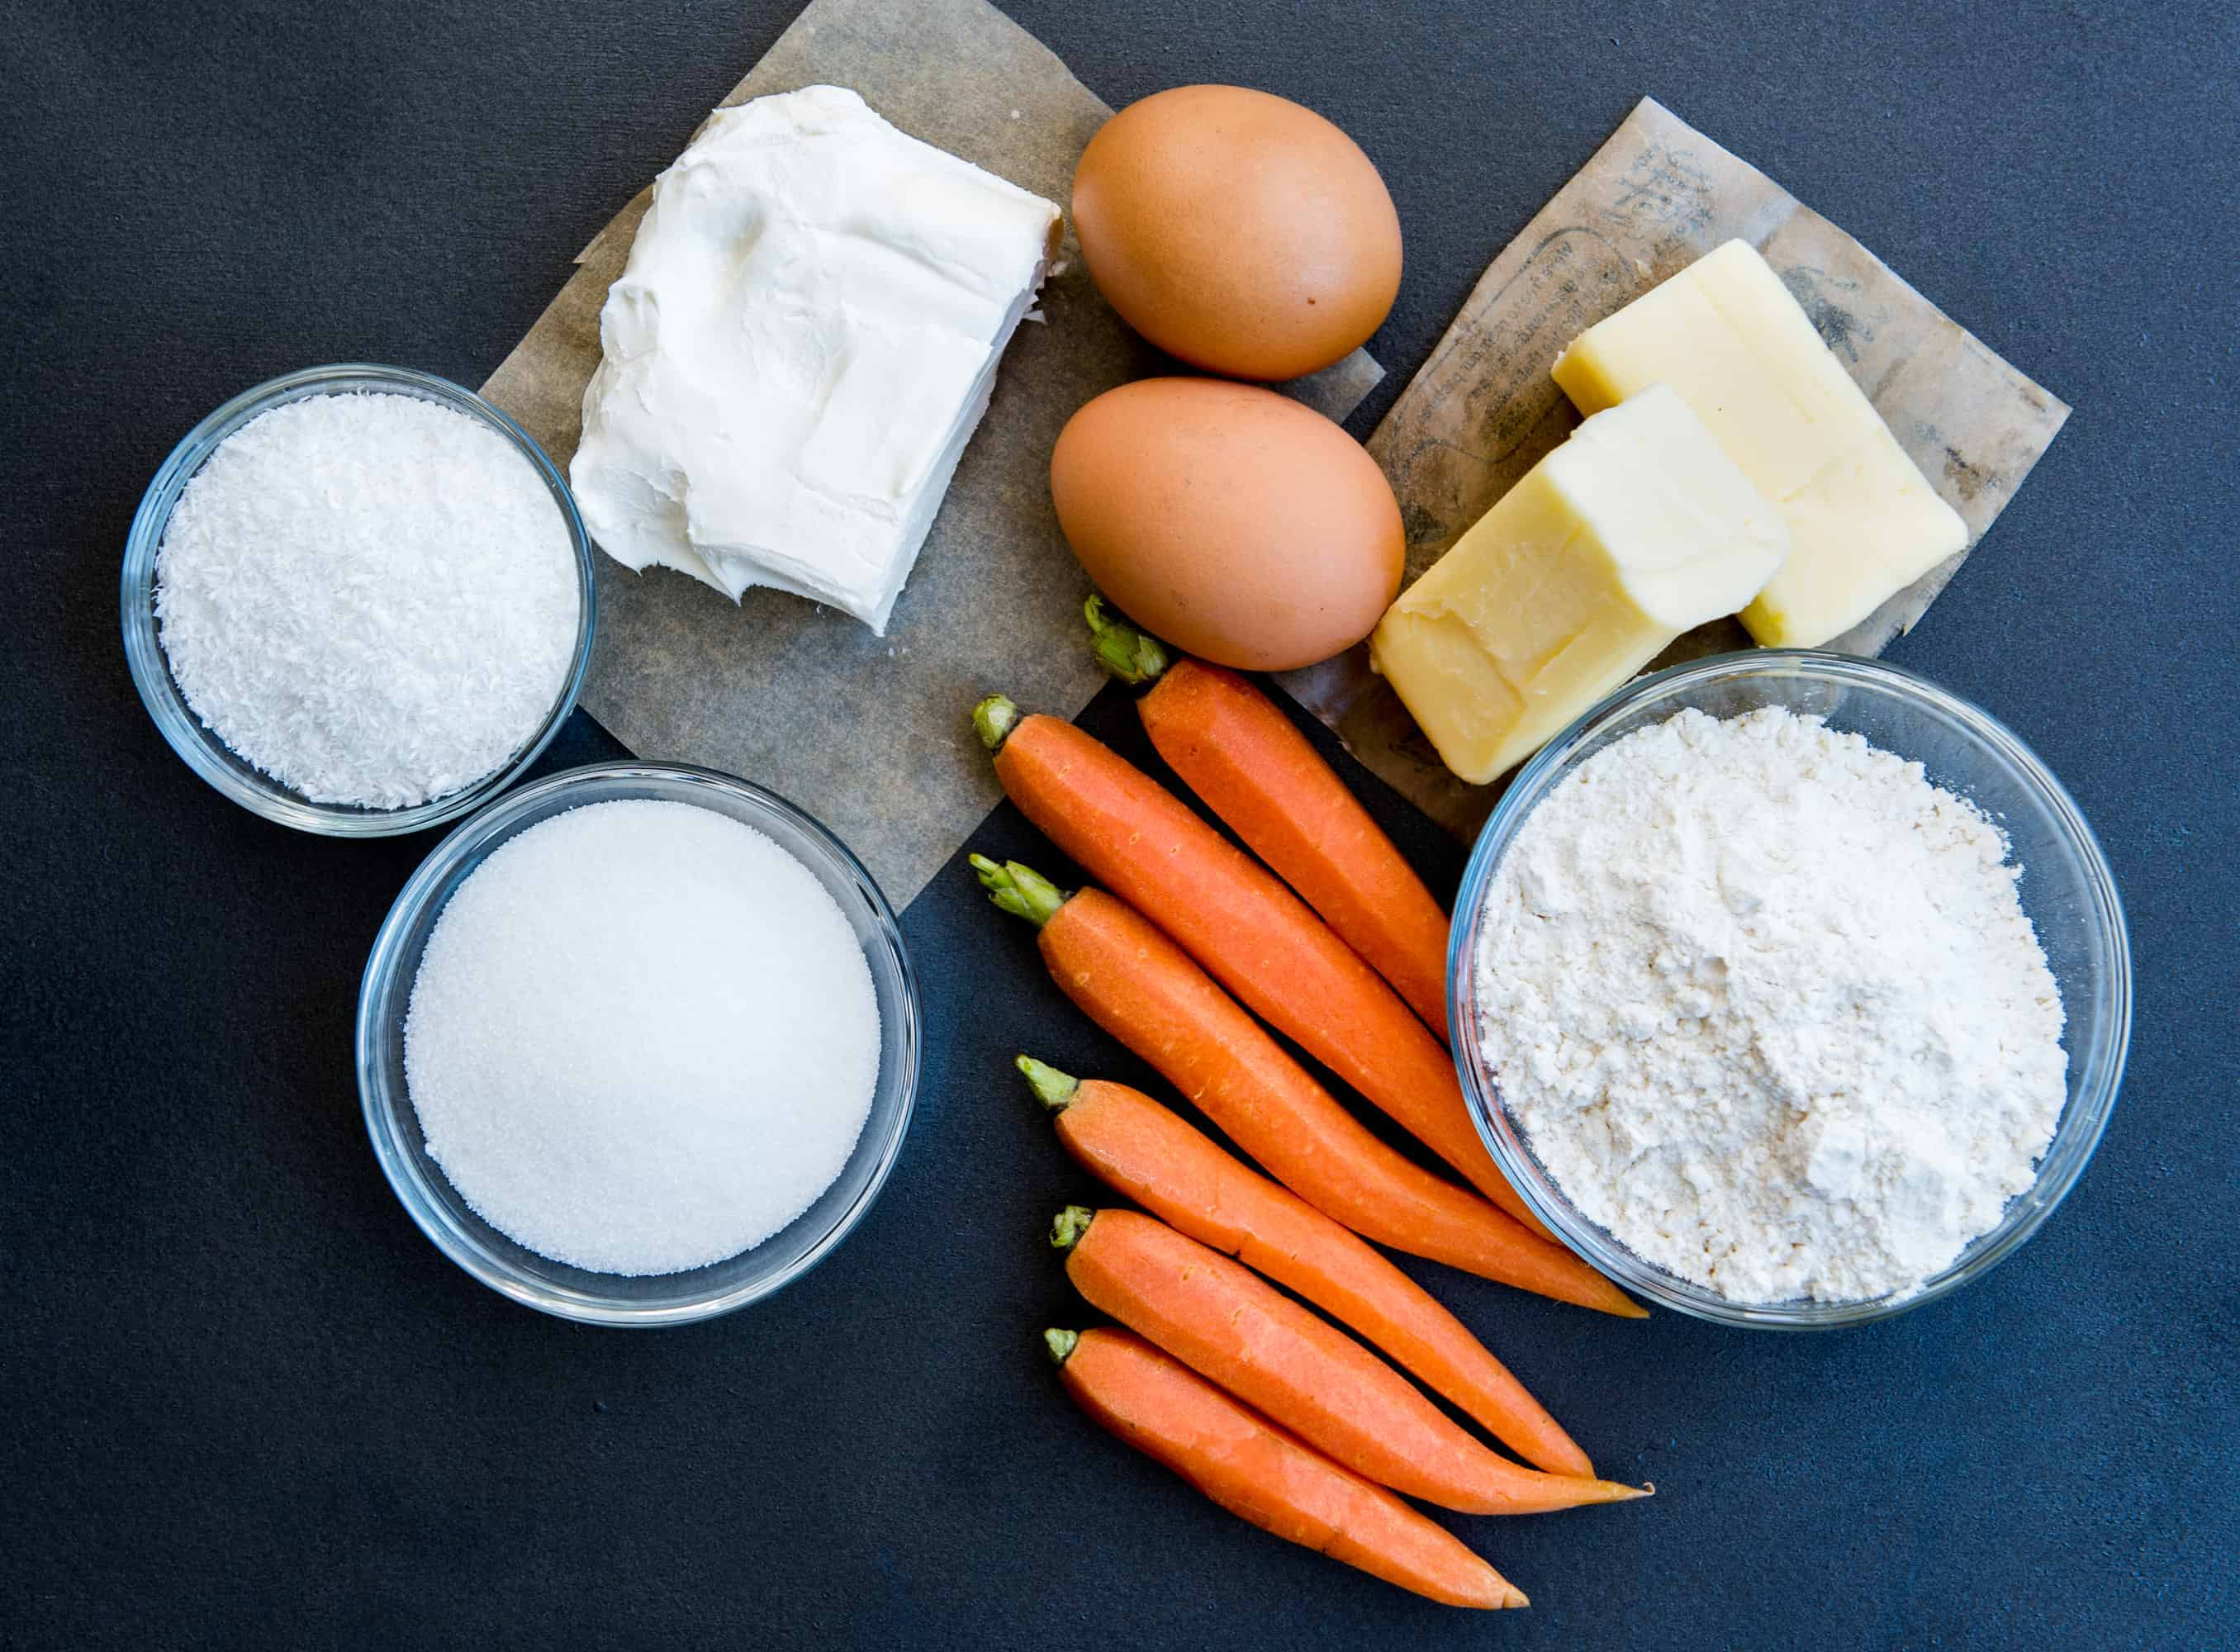 dark background. Ingredients laid out. Baby carrots, two eggs, two sticks of butter, block of cream cheese and small bowls filled with sugar, flour, and coconut flakes